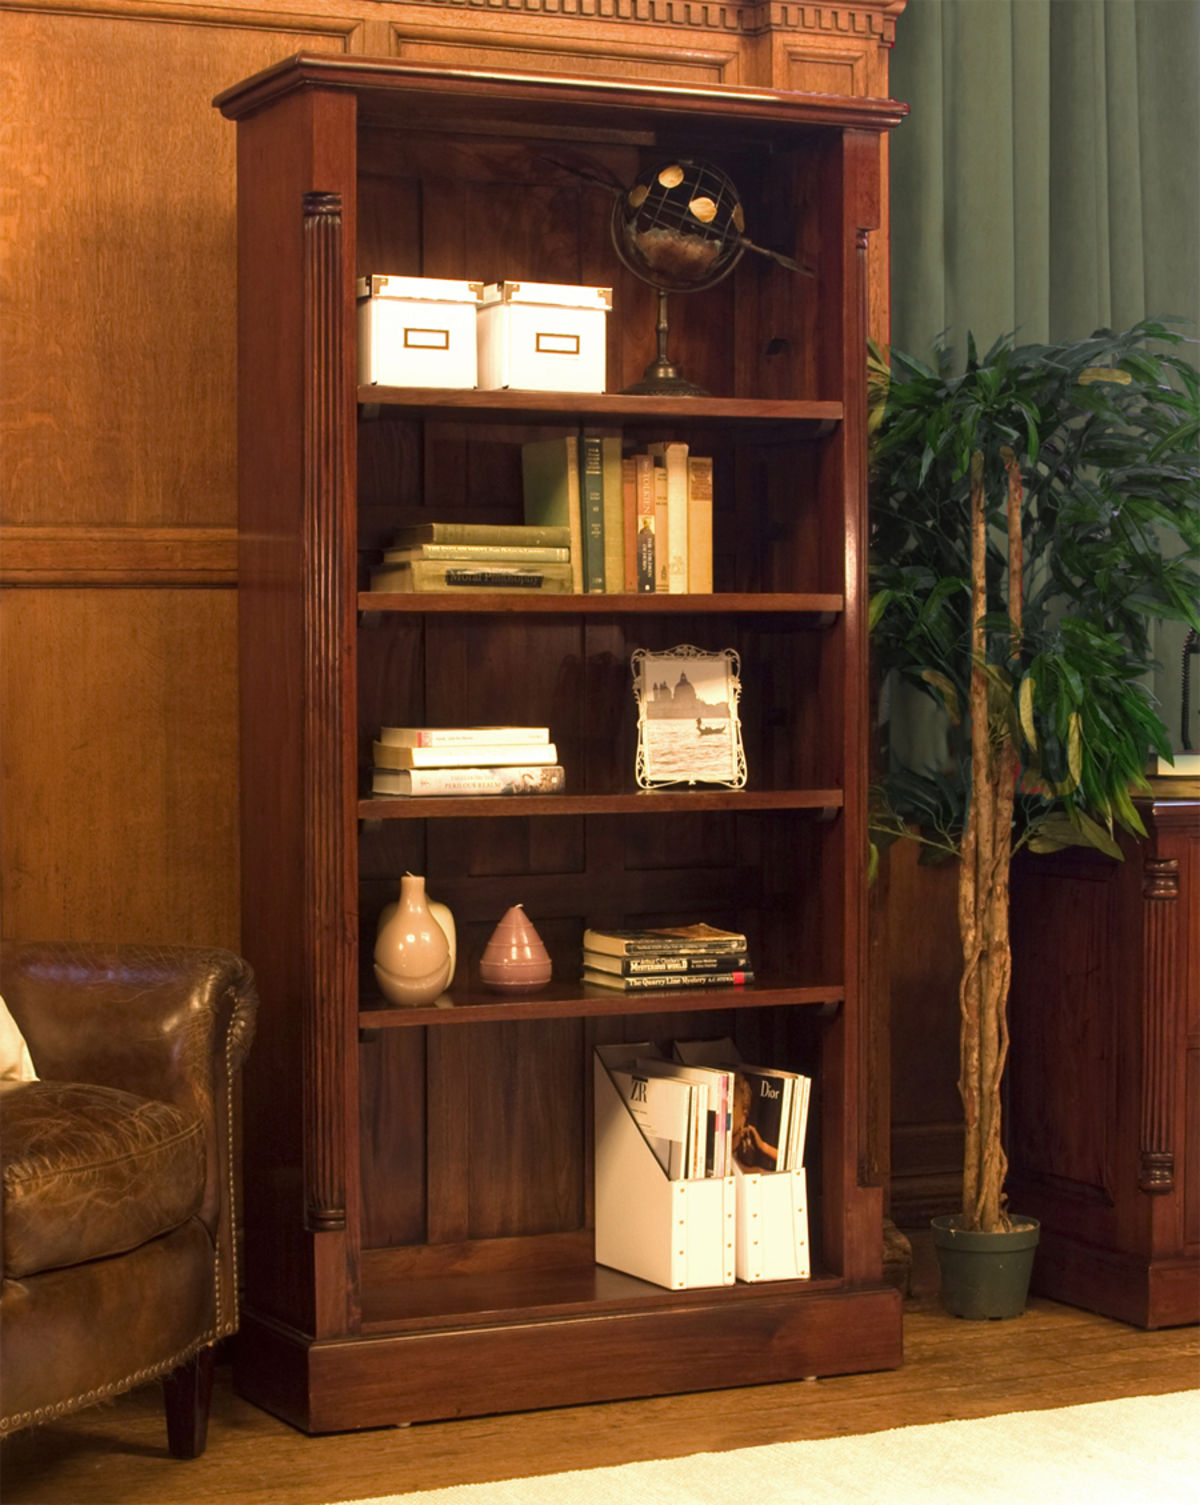 Living Room With Bookshelf: La Roque Tall Open Mahogany Bookcase Was £720.00 Now £639